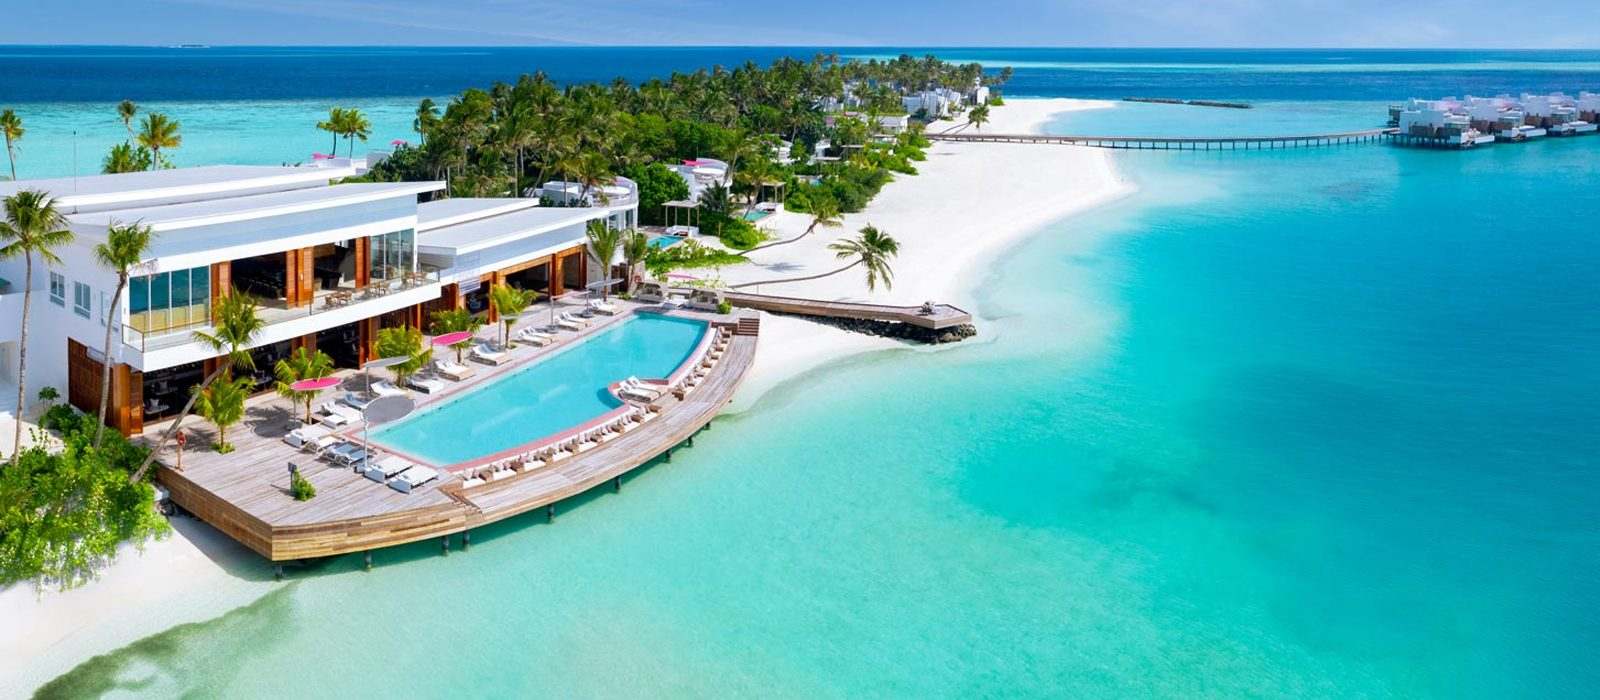 Luxury Maldives Holiday Packages LUX North Male Atoll Header